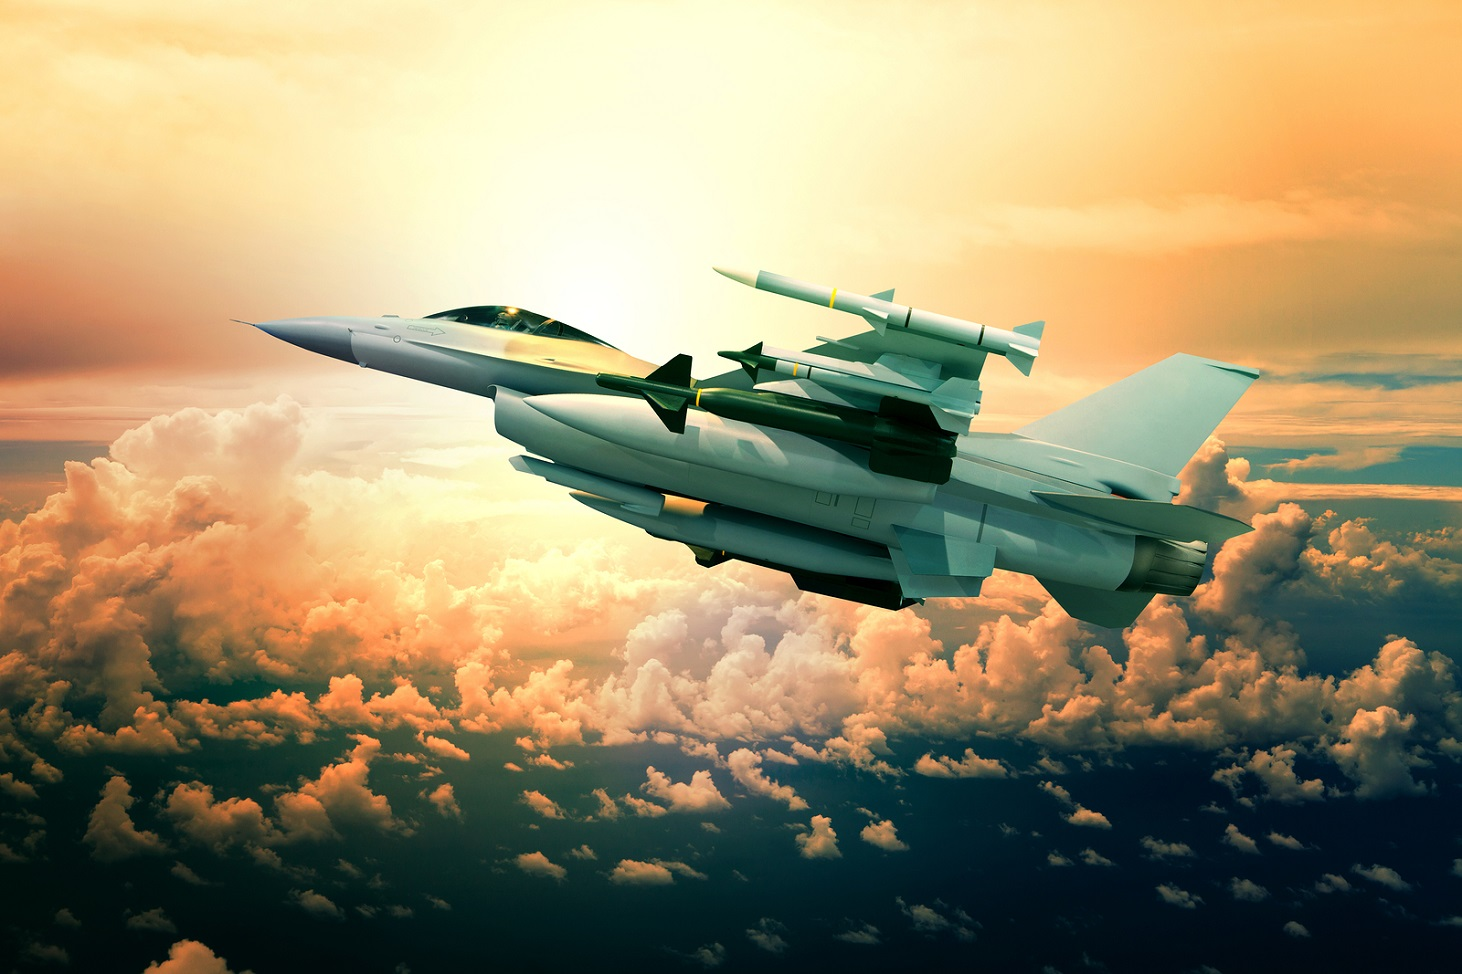 military jet plane with missile weapon flying against sunset sky use for world battle and political conflict in middle east